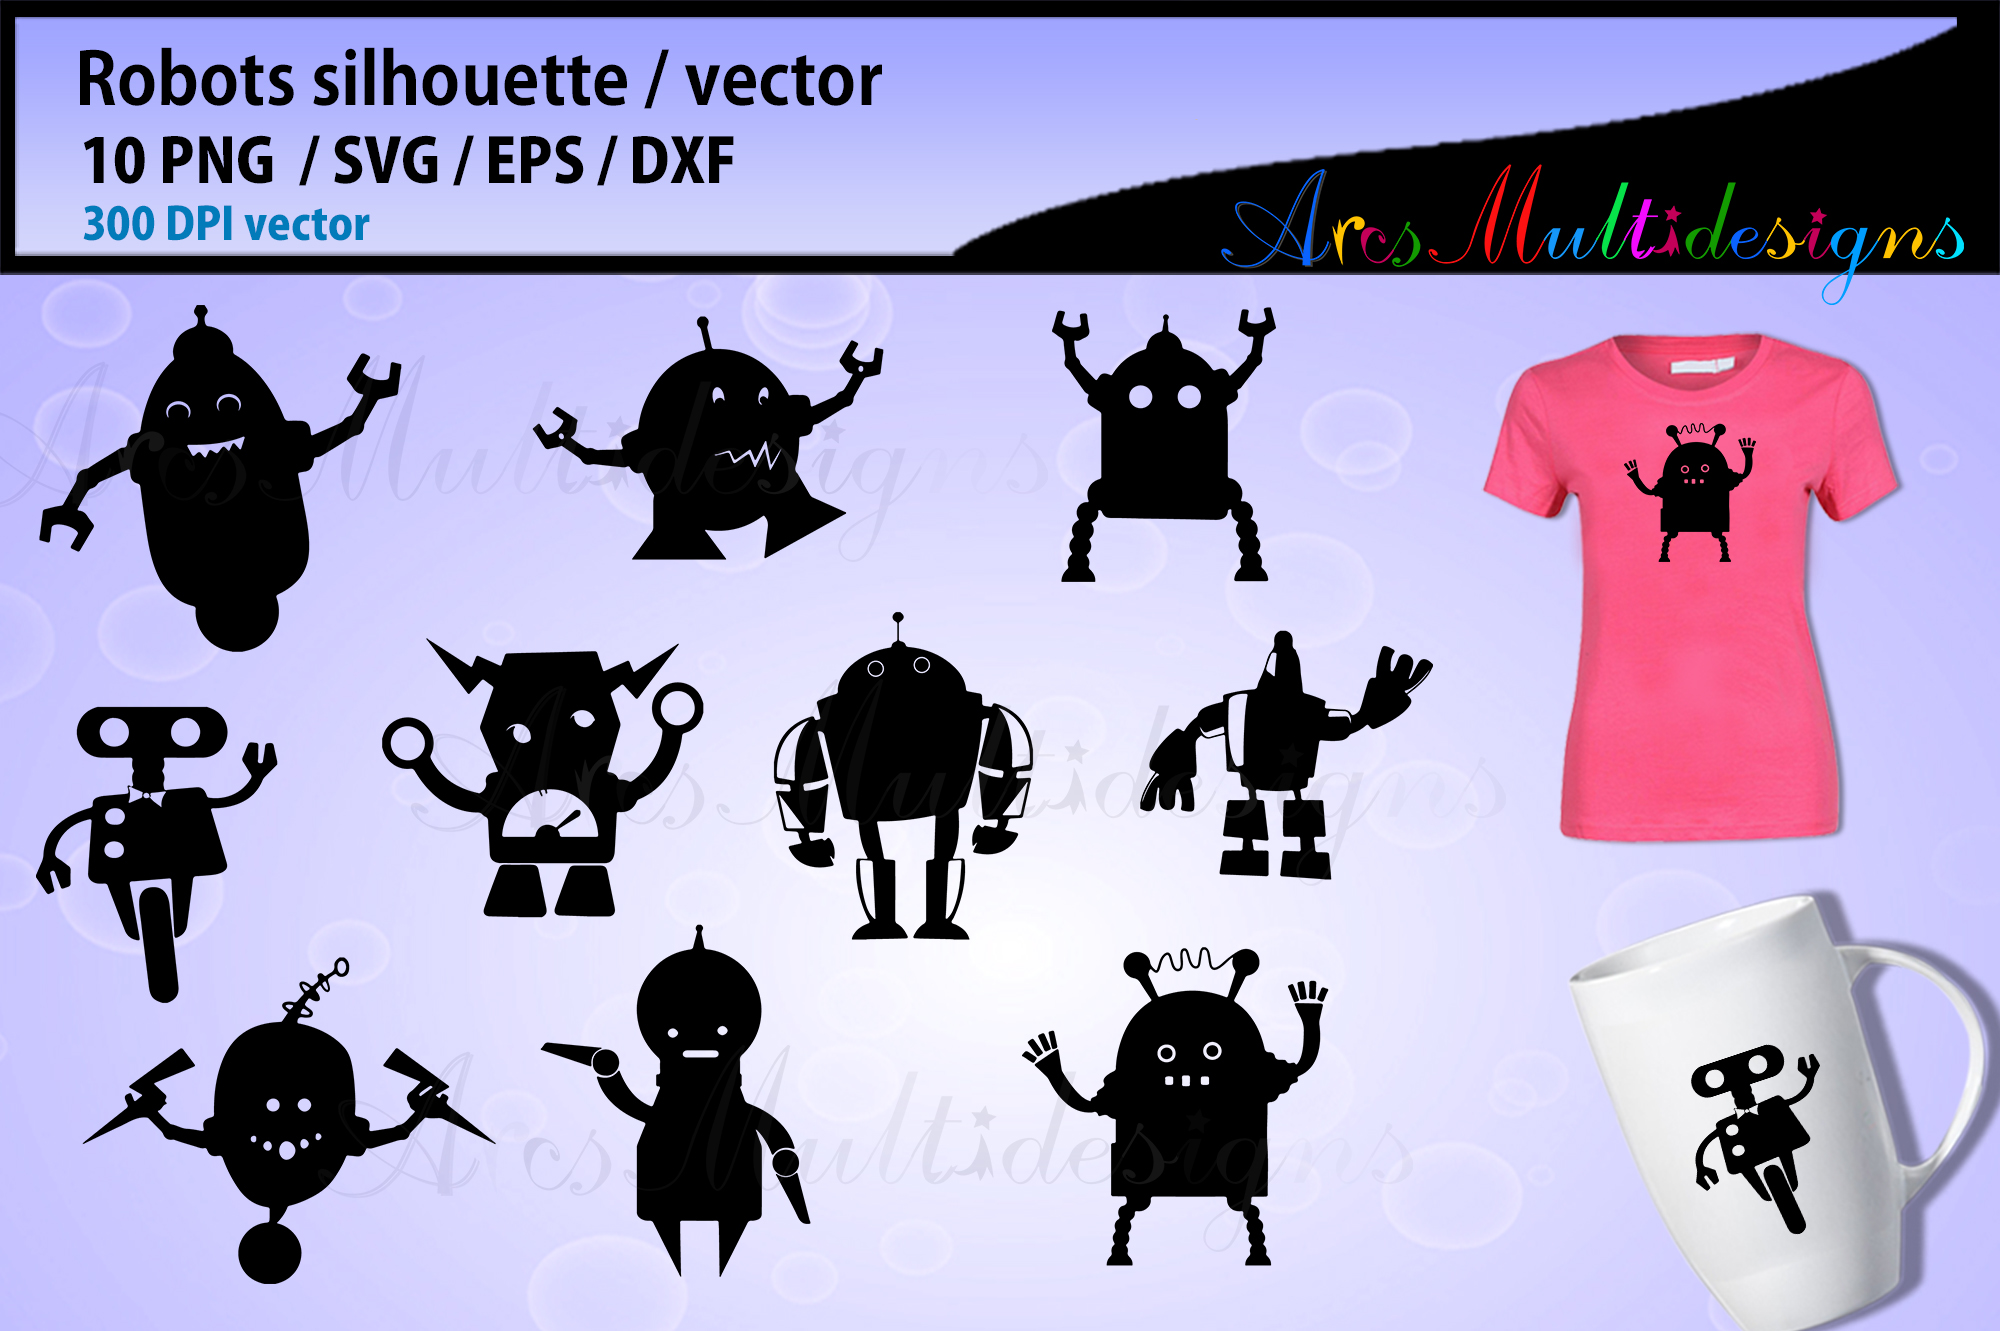 Download Free Robot Silhouette Graphic By Arcs Multidesigns Creative Fabrica for Cricut Explore, Silhouette and other cutting machines.